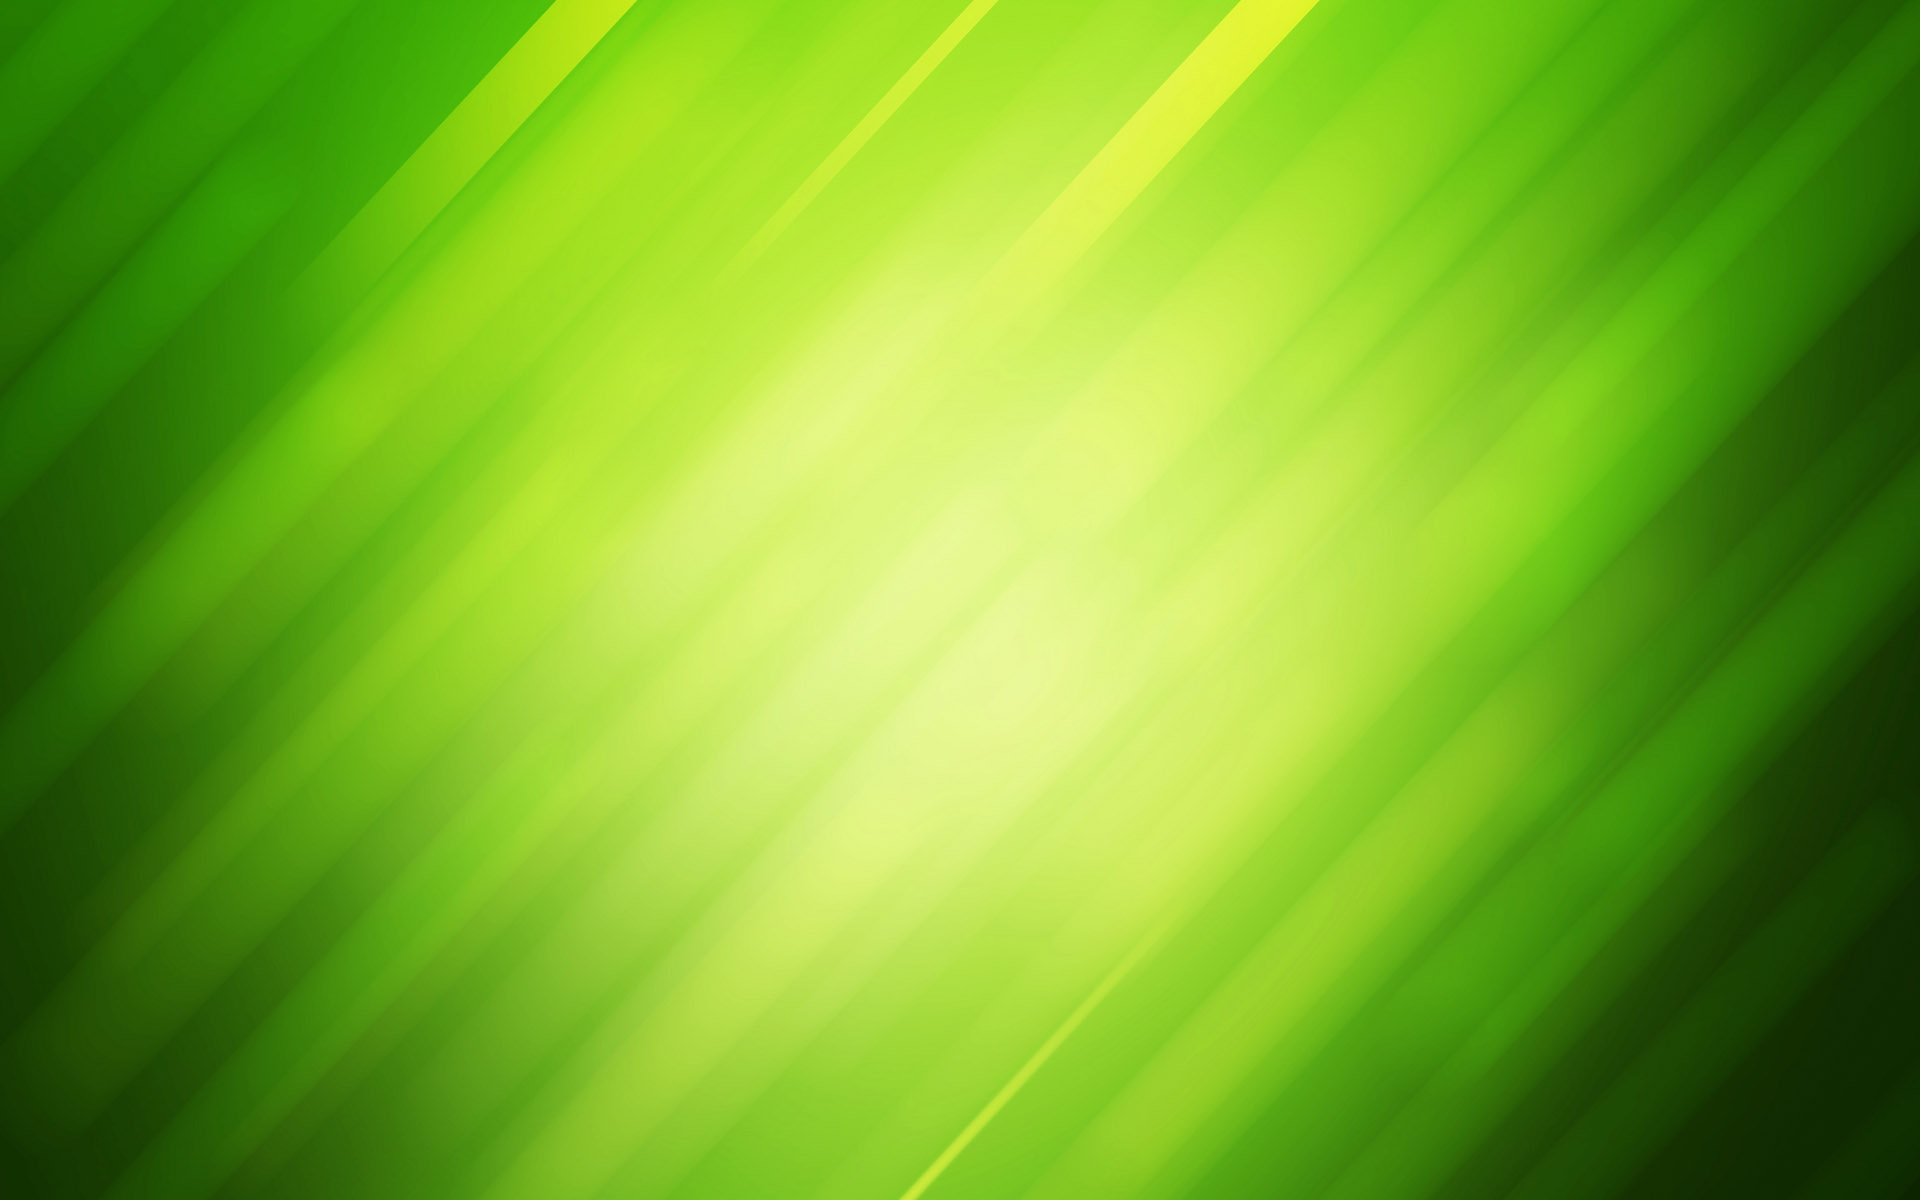 HD Image Backgrounds Group (87+)